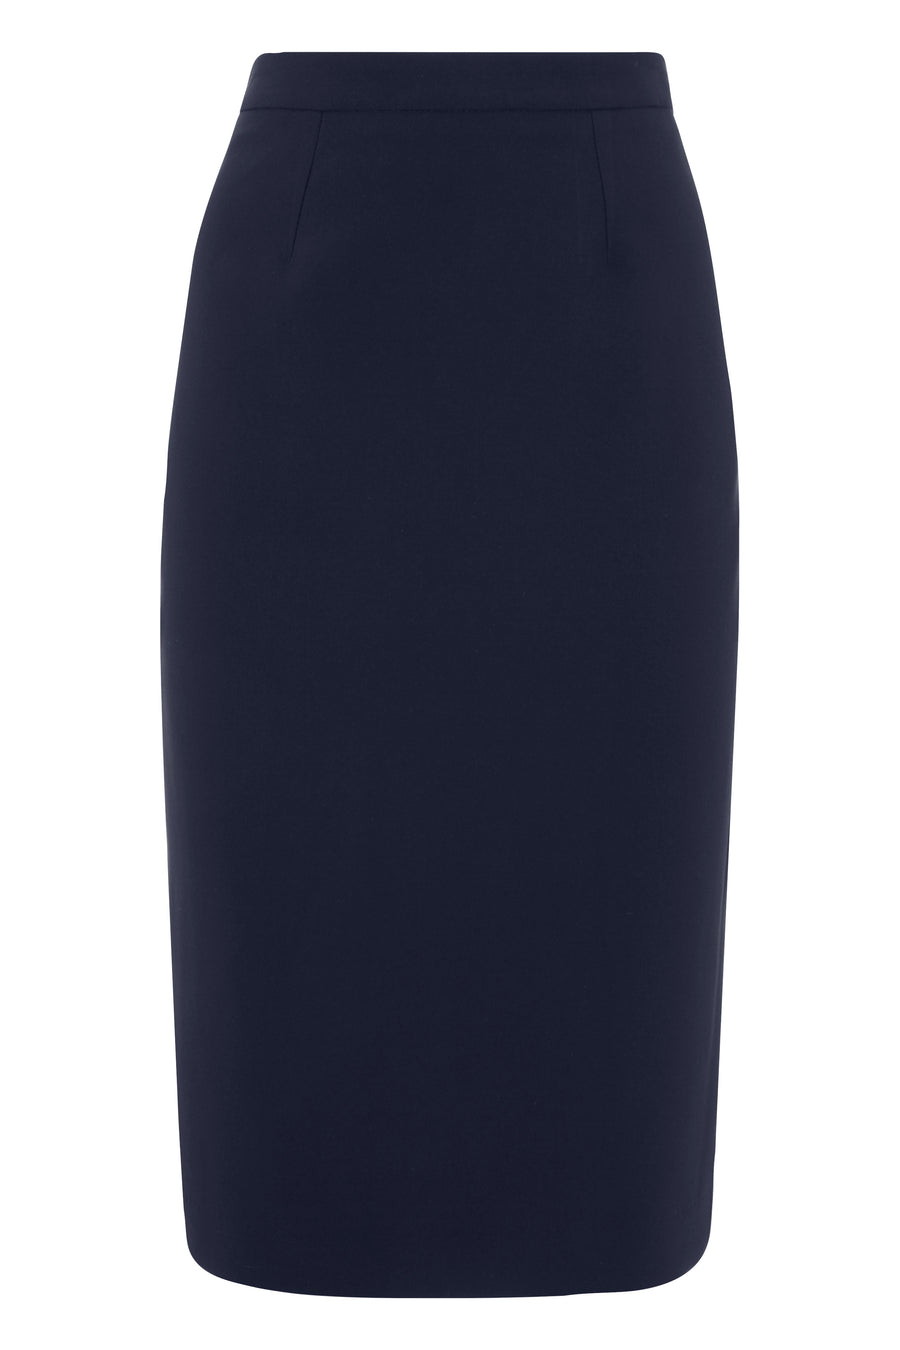 Suzy Navy Suiting Skirt